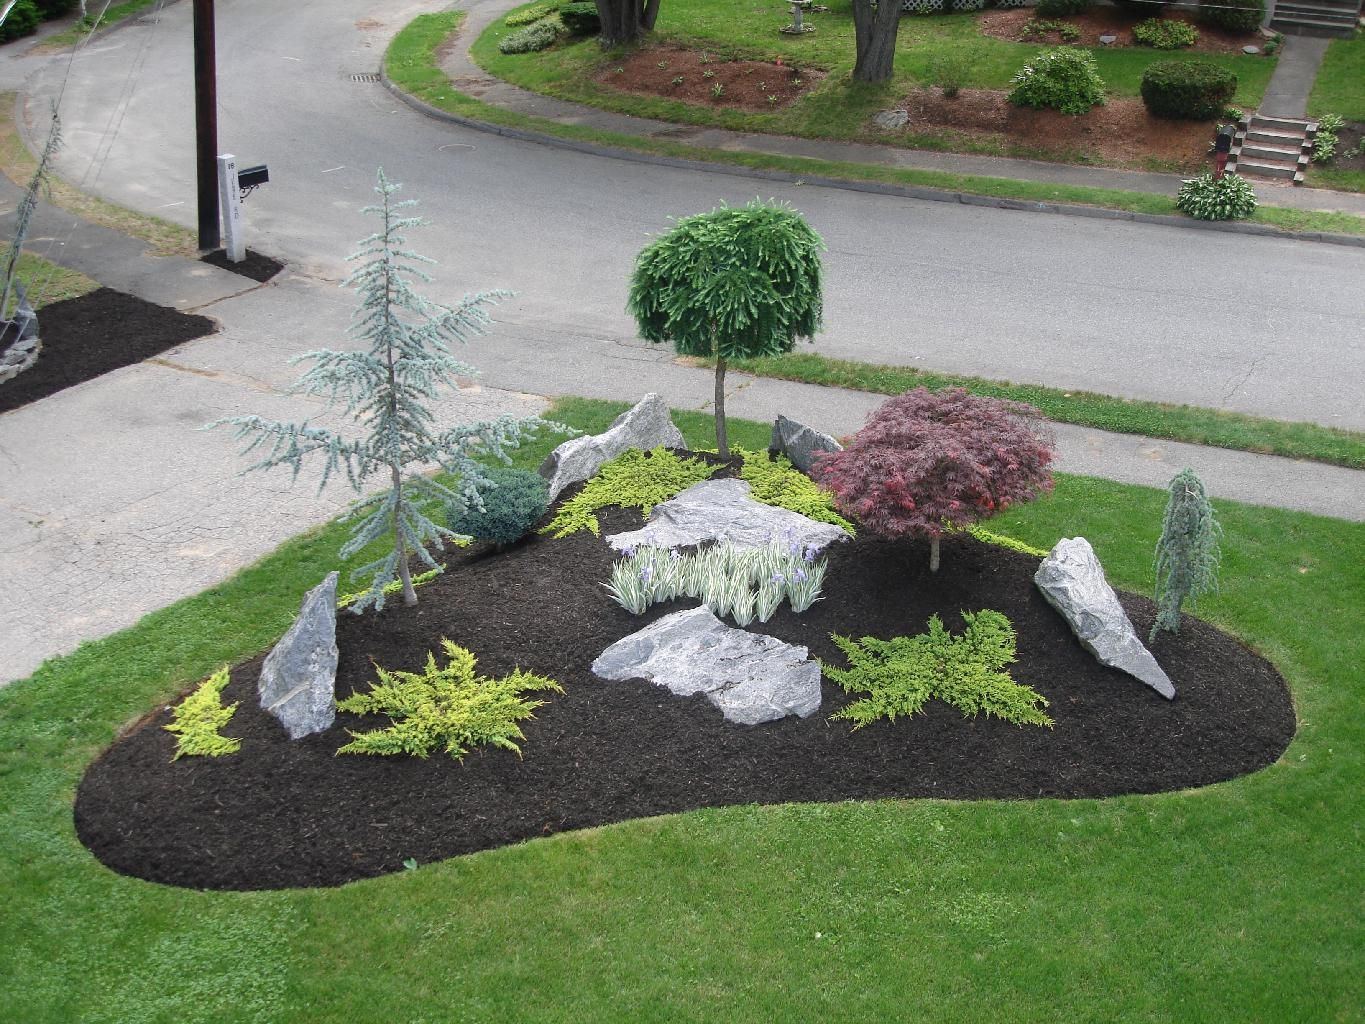 Simple landscape designs with rock beds google search for Landscape garden design ideas